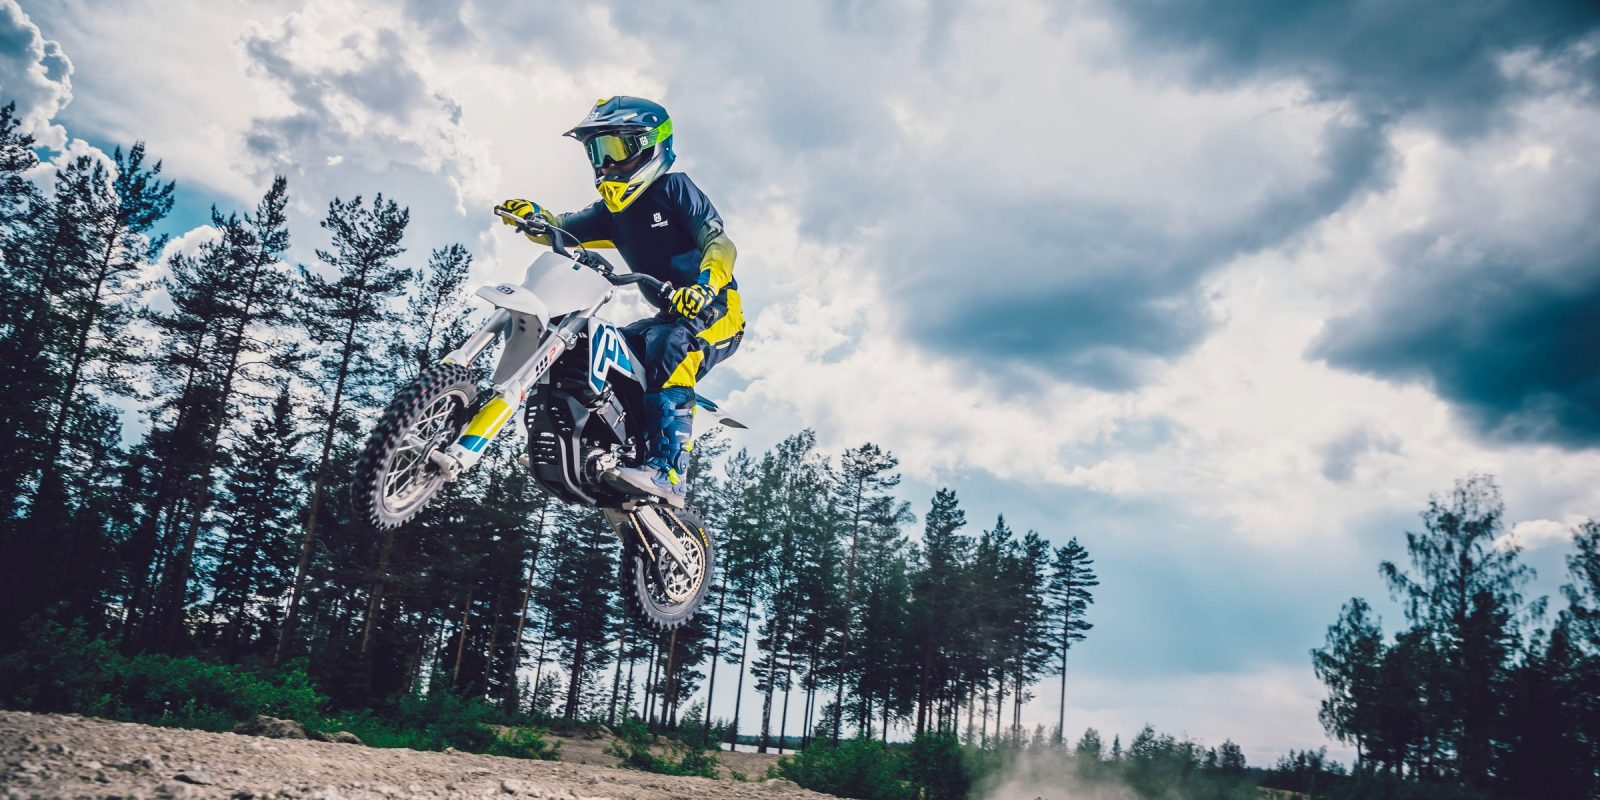 Husqvarna launches its first electric motorcycle, the EE 5 electric dirt bike